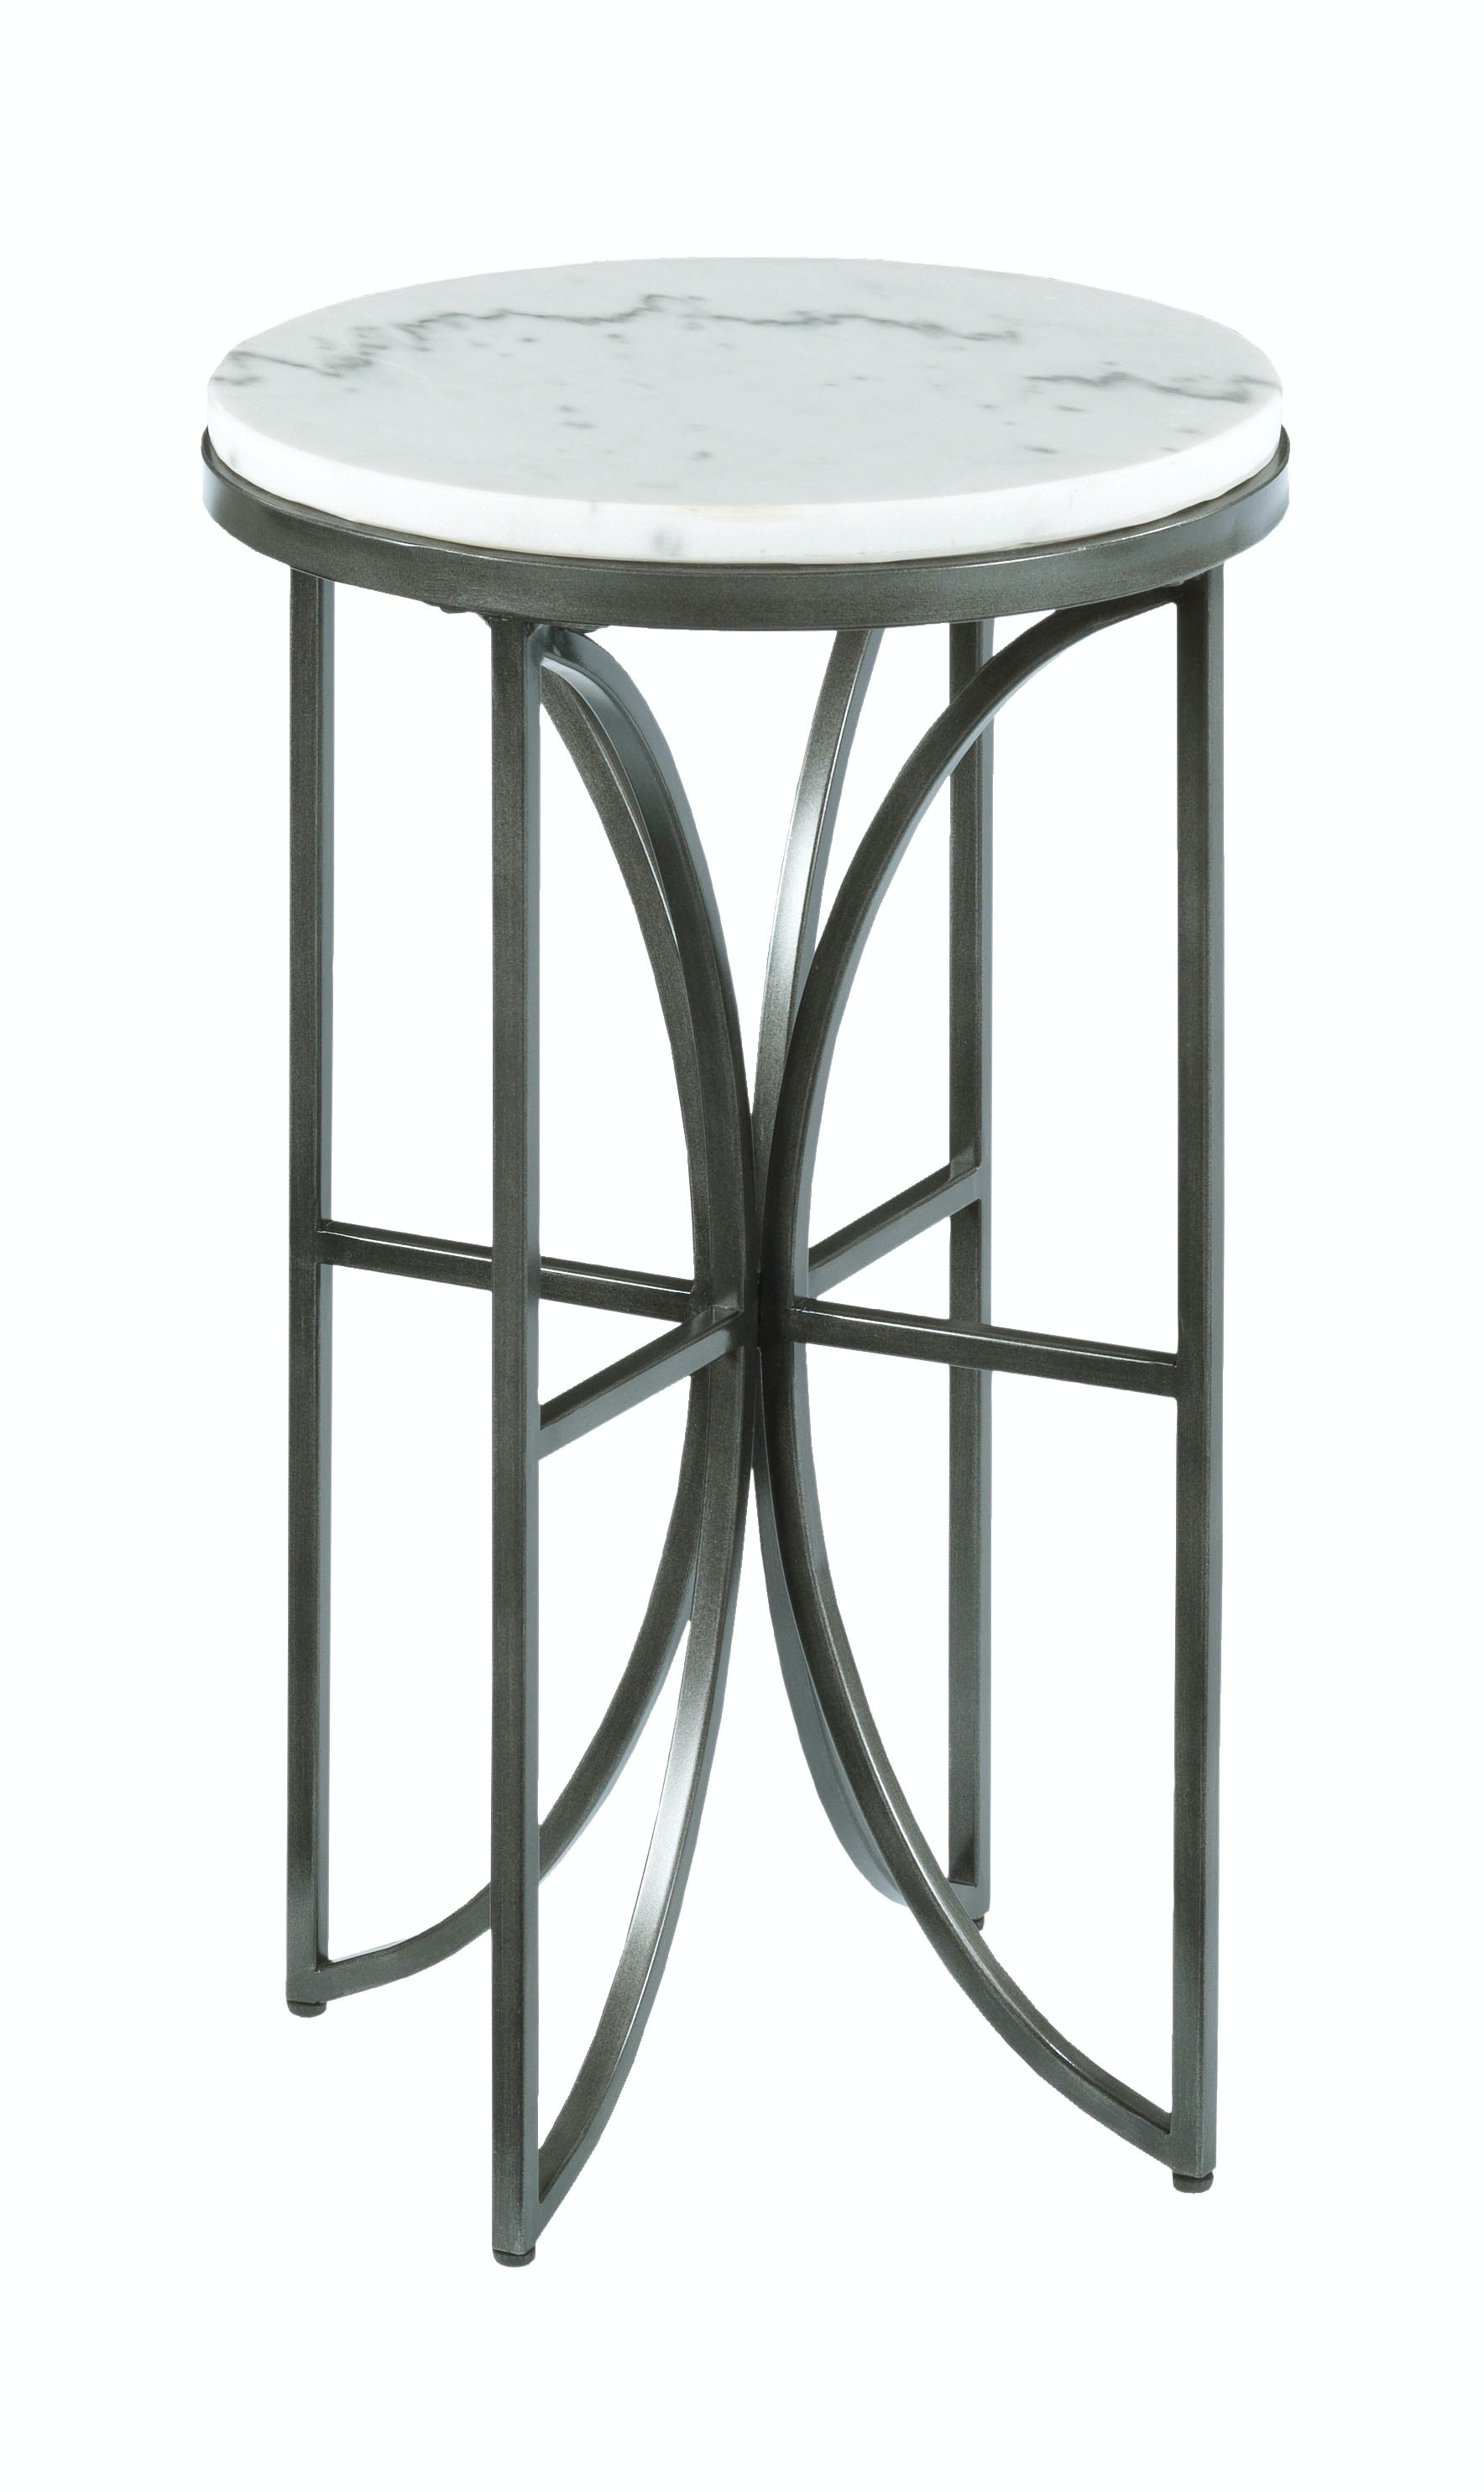 Hammary Impact Small Round Accent Table 576 917